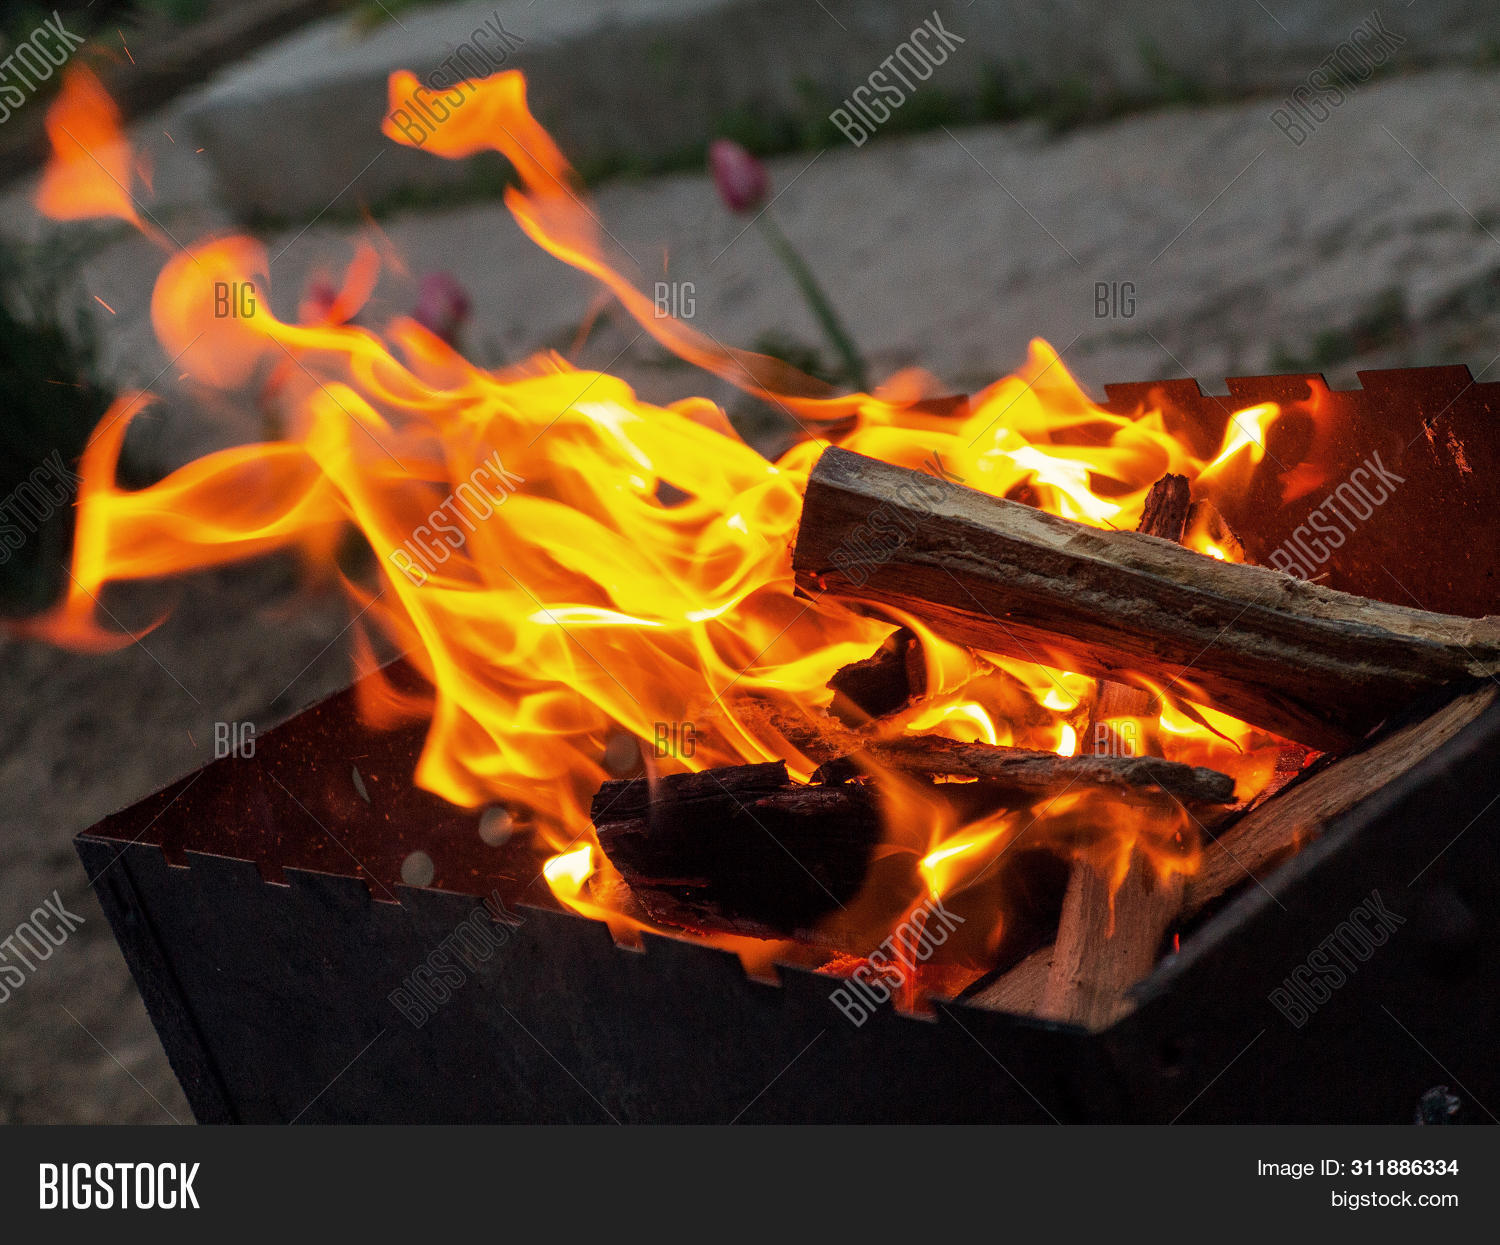 ash,background,barbecue,bbq,beautiful,black,blaze,bonfire,brazier,bright,burn,burning,camp,campfire,charcoal,coal,cooking,danger,dark,embers,fire,fireplace,firewood,flame,food,forest,glowing,grill,heat,hot,kebabs,light,log,metal,natural,nature,night,orange,outdoor,picnic,red,smoke,sparks,summer,tree,warm,wood,yellow